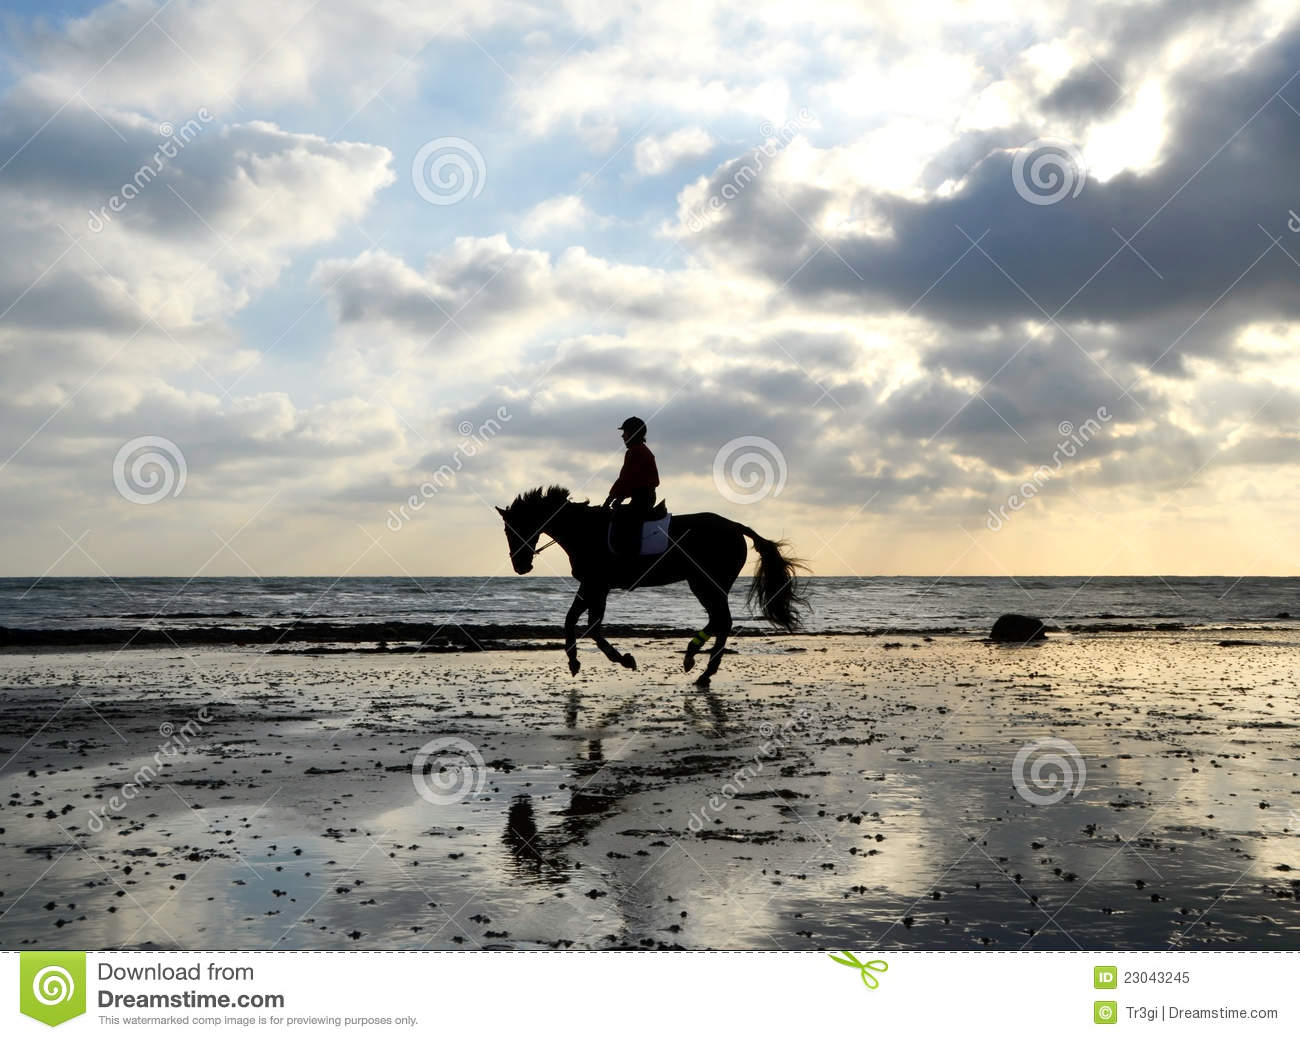 Silhouette Of Horse Rider Galloping On The Beach Royalty